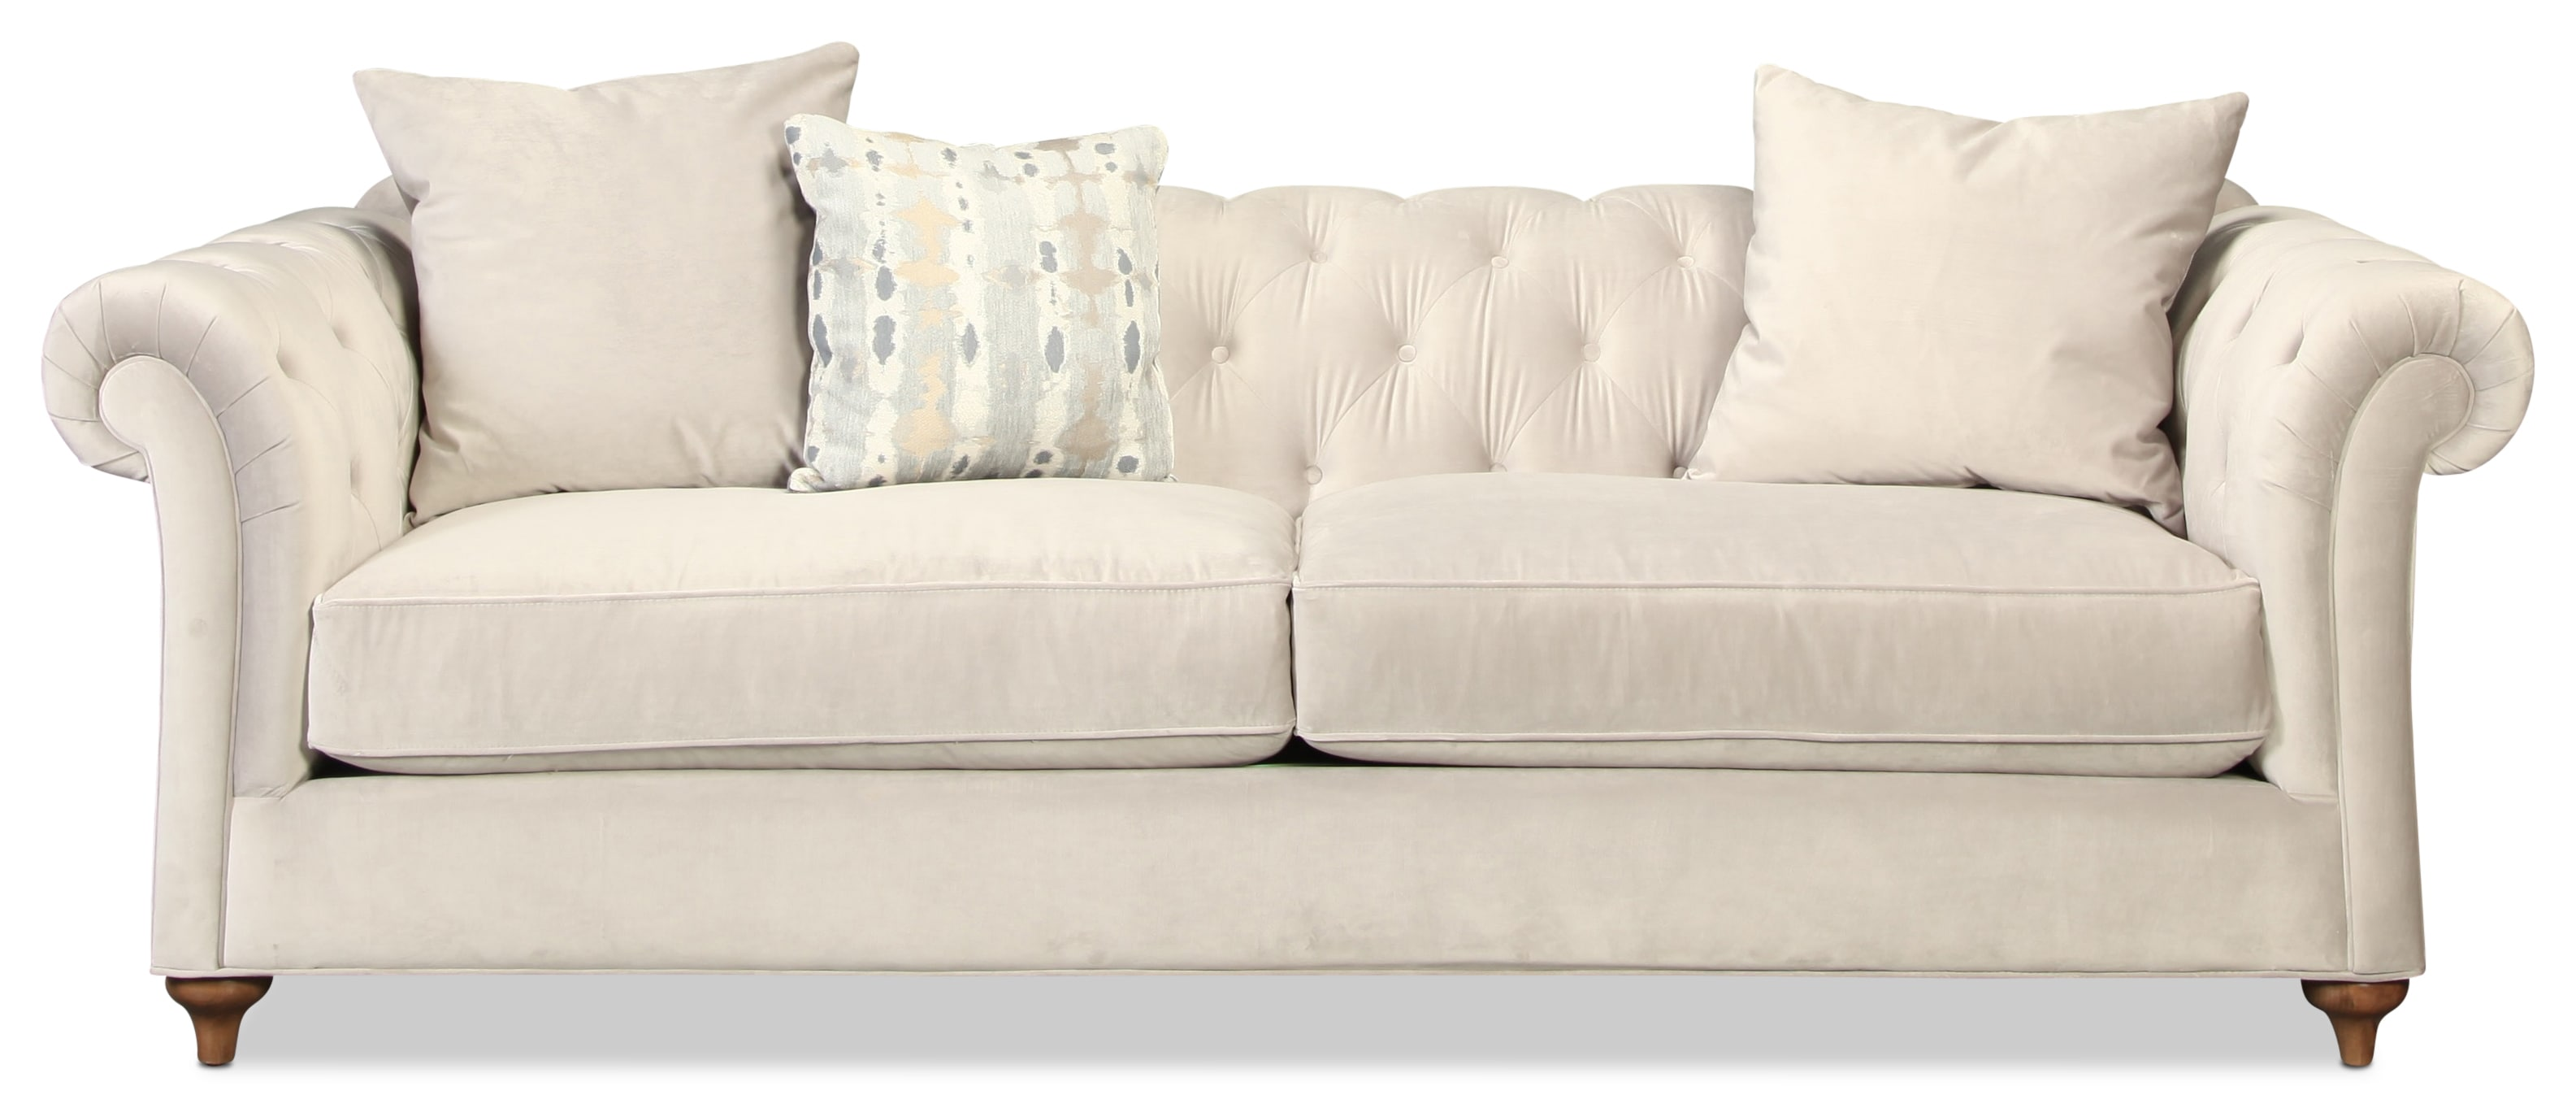 Levin Furniture Sofas Refil Sofa : 512213 from forexrefiller.com size 3170 x 1363 jpeg 341kB